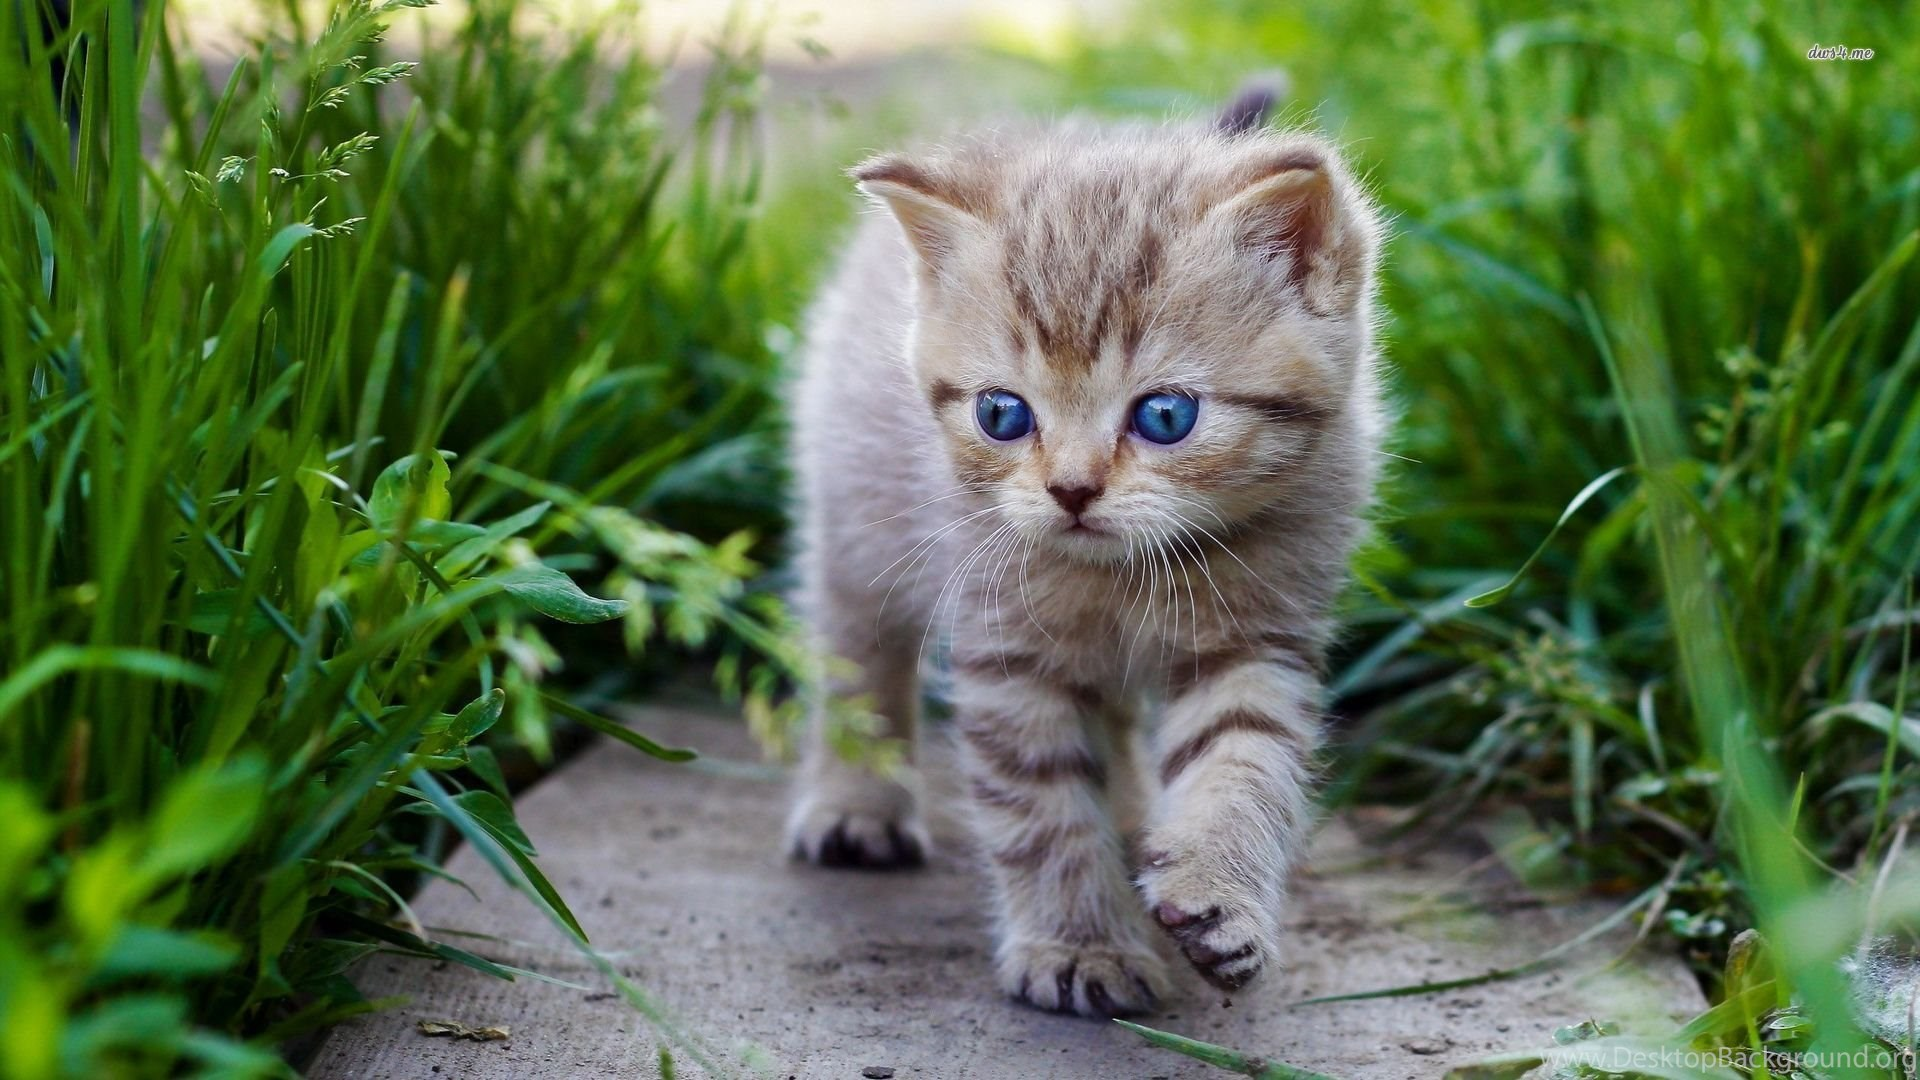 Amazing Wallpaper High Resolution Cat - 629953_high-resolution-cute-baby-animal-kitty-cat-wallpapers-hd-11-full_1920x1080_h  Graphic_628821.jpg